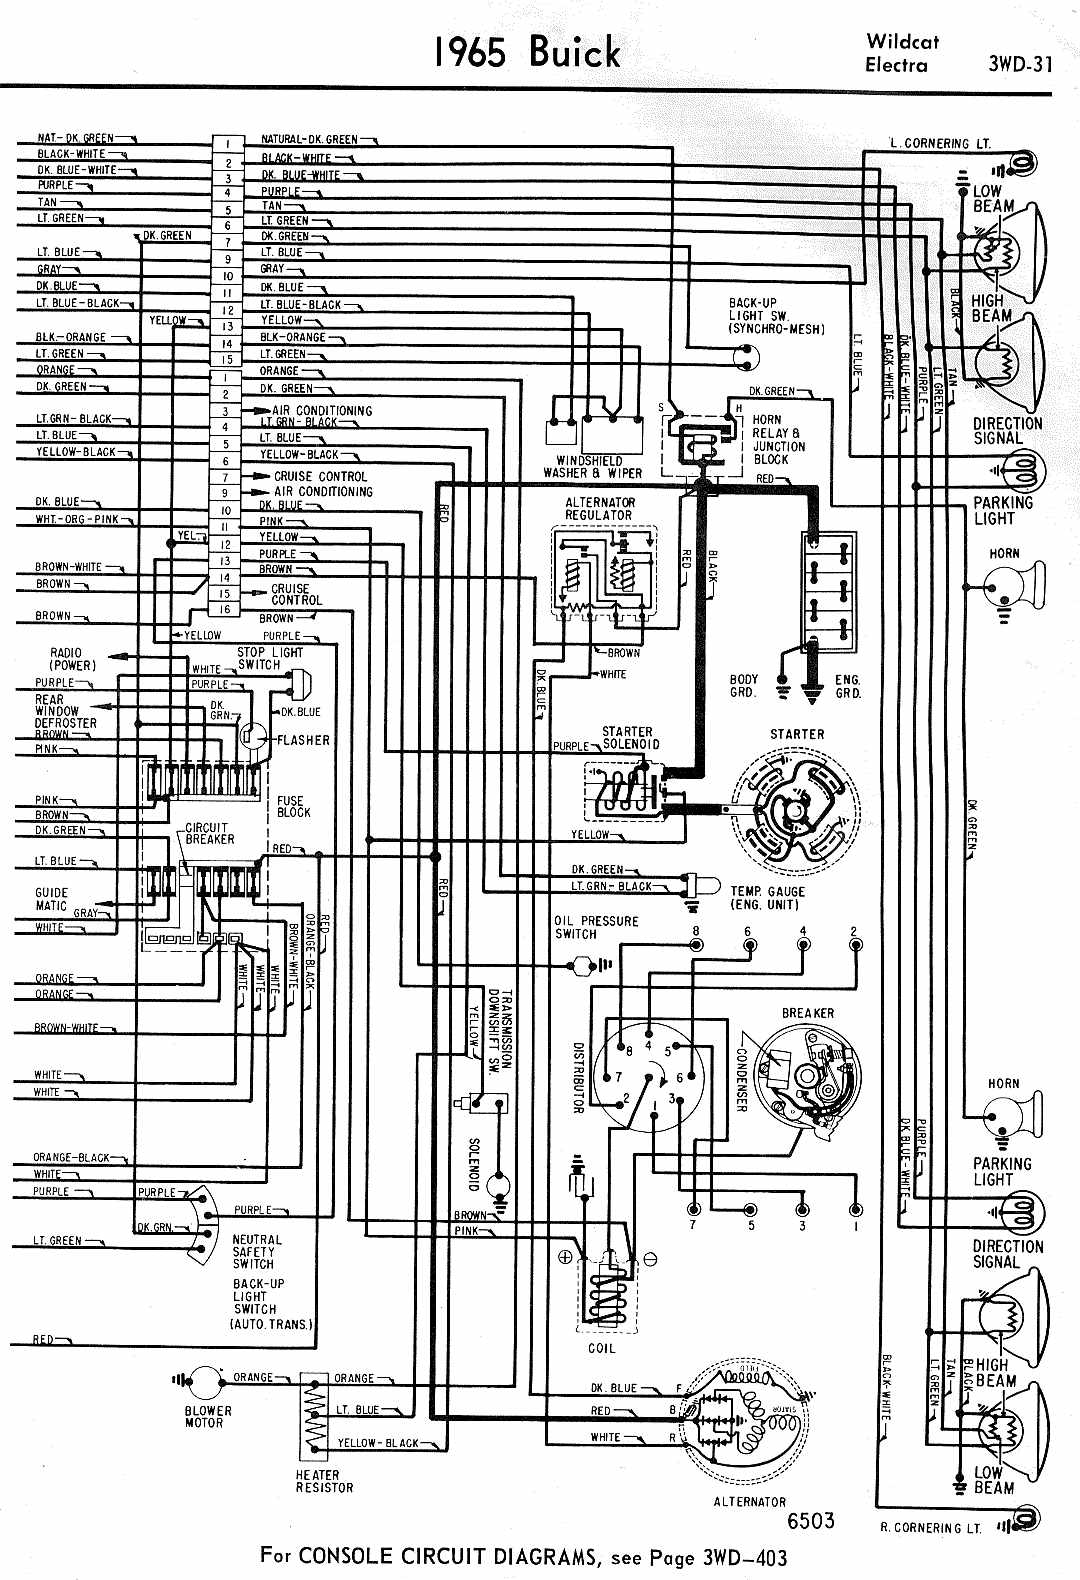 1968 Buick Gran Sport Wiring Diagram Trusted 1969 70 71 72 Skylark Gs Gsx Electra Lesabre Enthusiast Diagrams U2022 1955